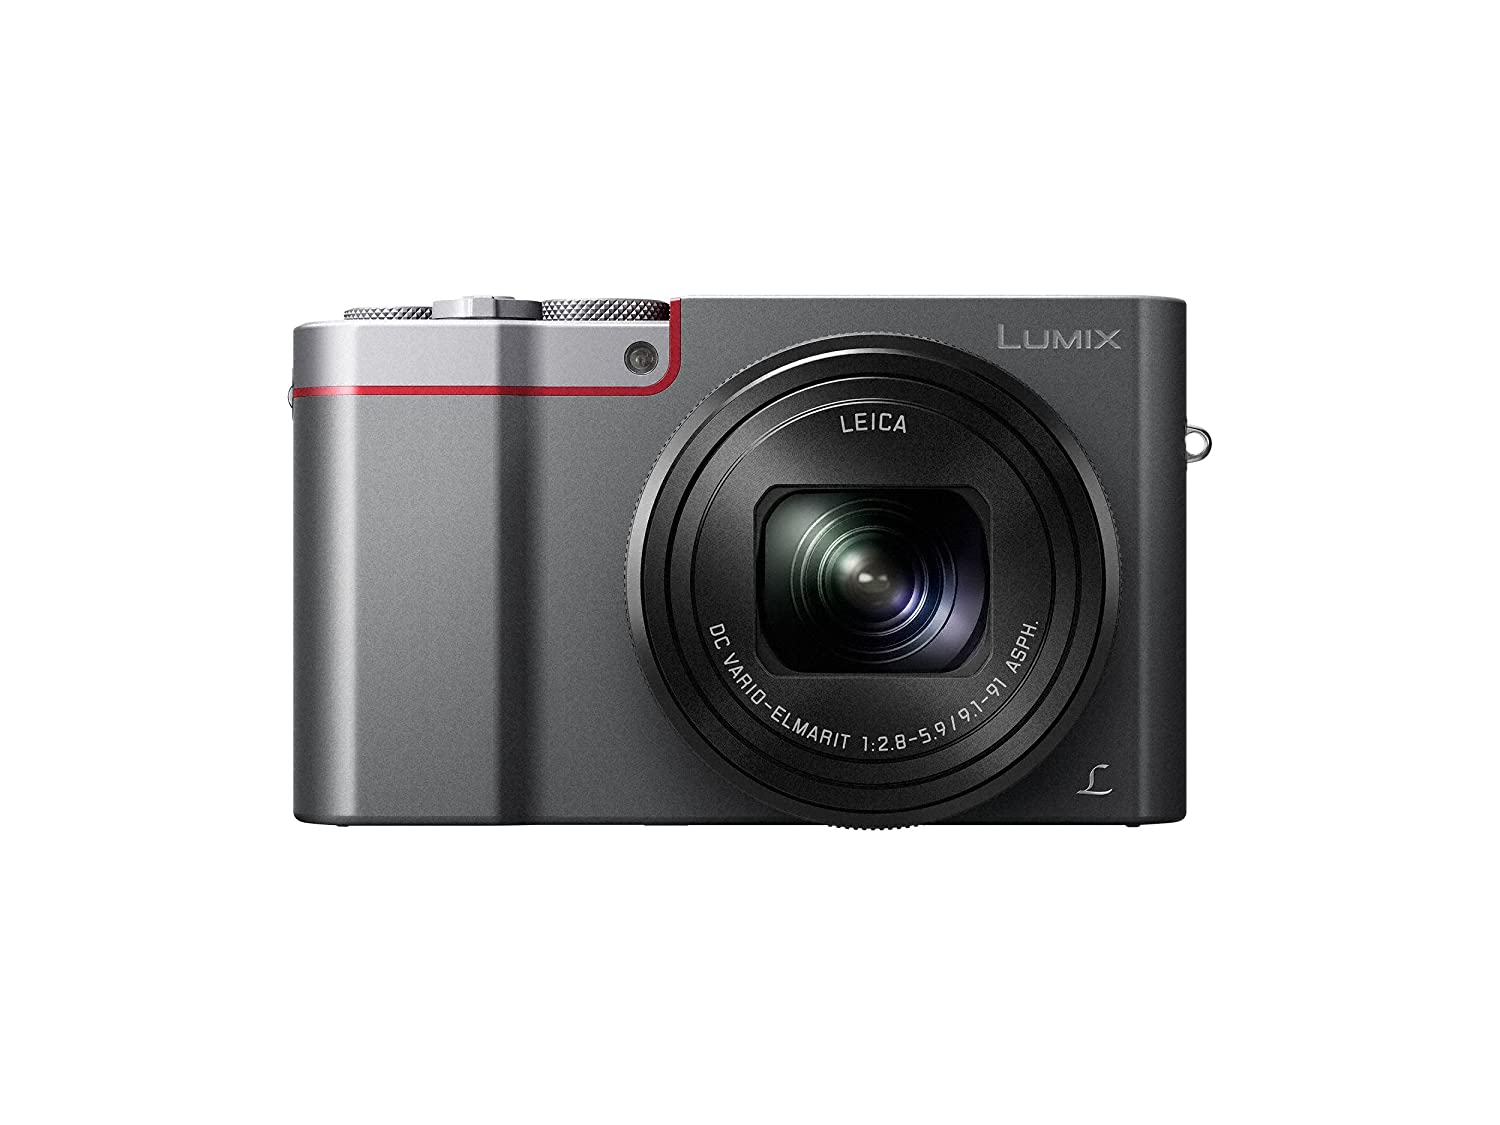 Panasonic DMC-ZS100S LUMIX 4K Digital Camera with 20 Megapixel Sensor, WiFi (Silver)